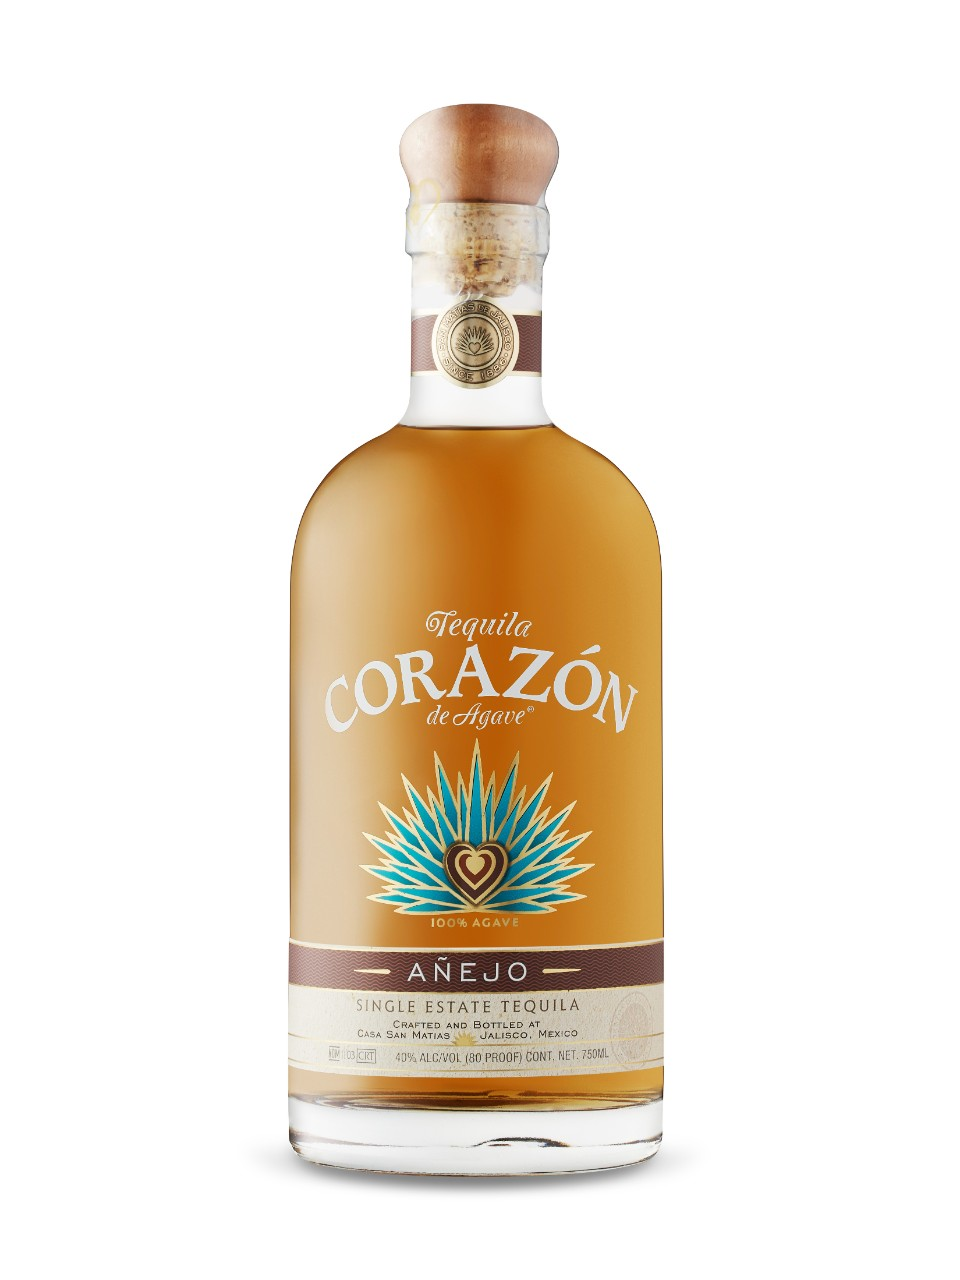 Image for Corazon Anejo Tequila from LCBO